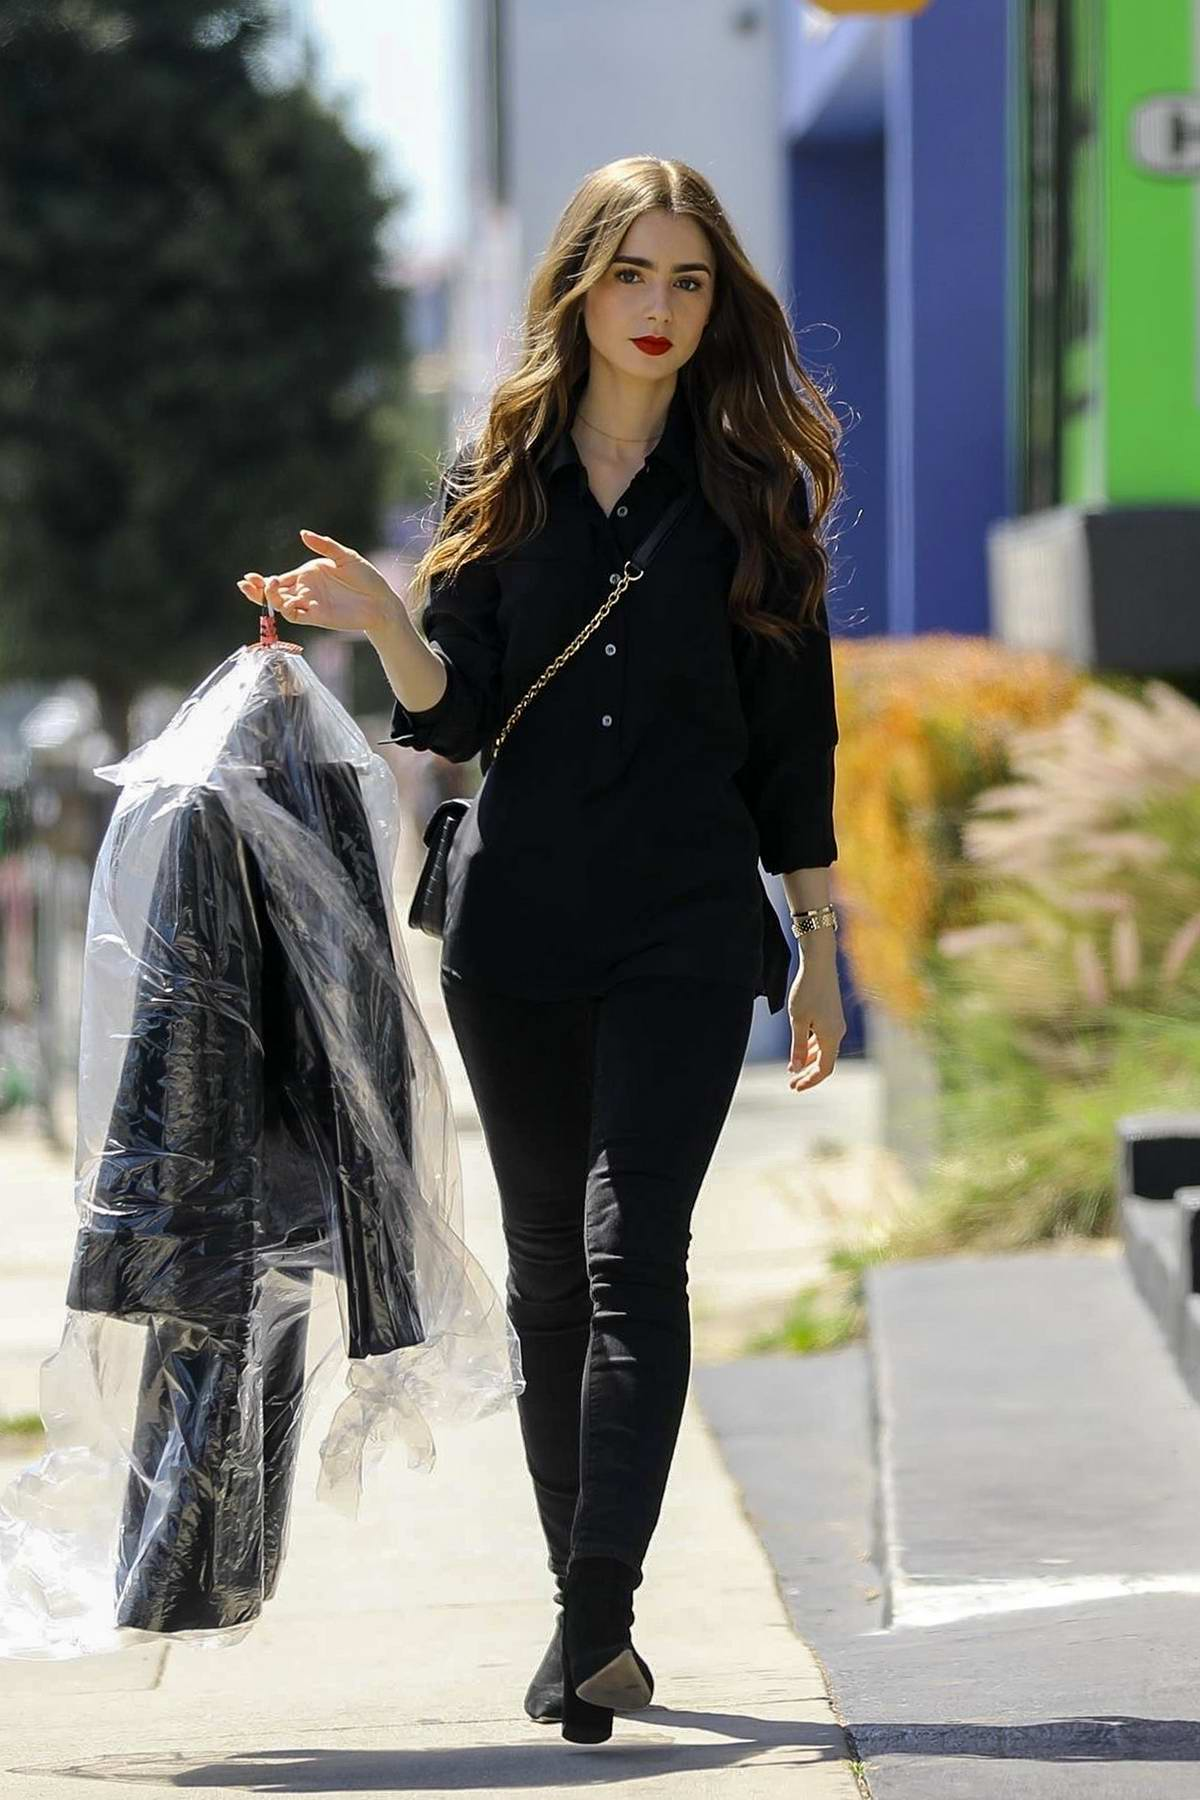 Lily Collins looks radiant in an all black ensemble while out running errands in West Hollywood, Los Angeles